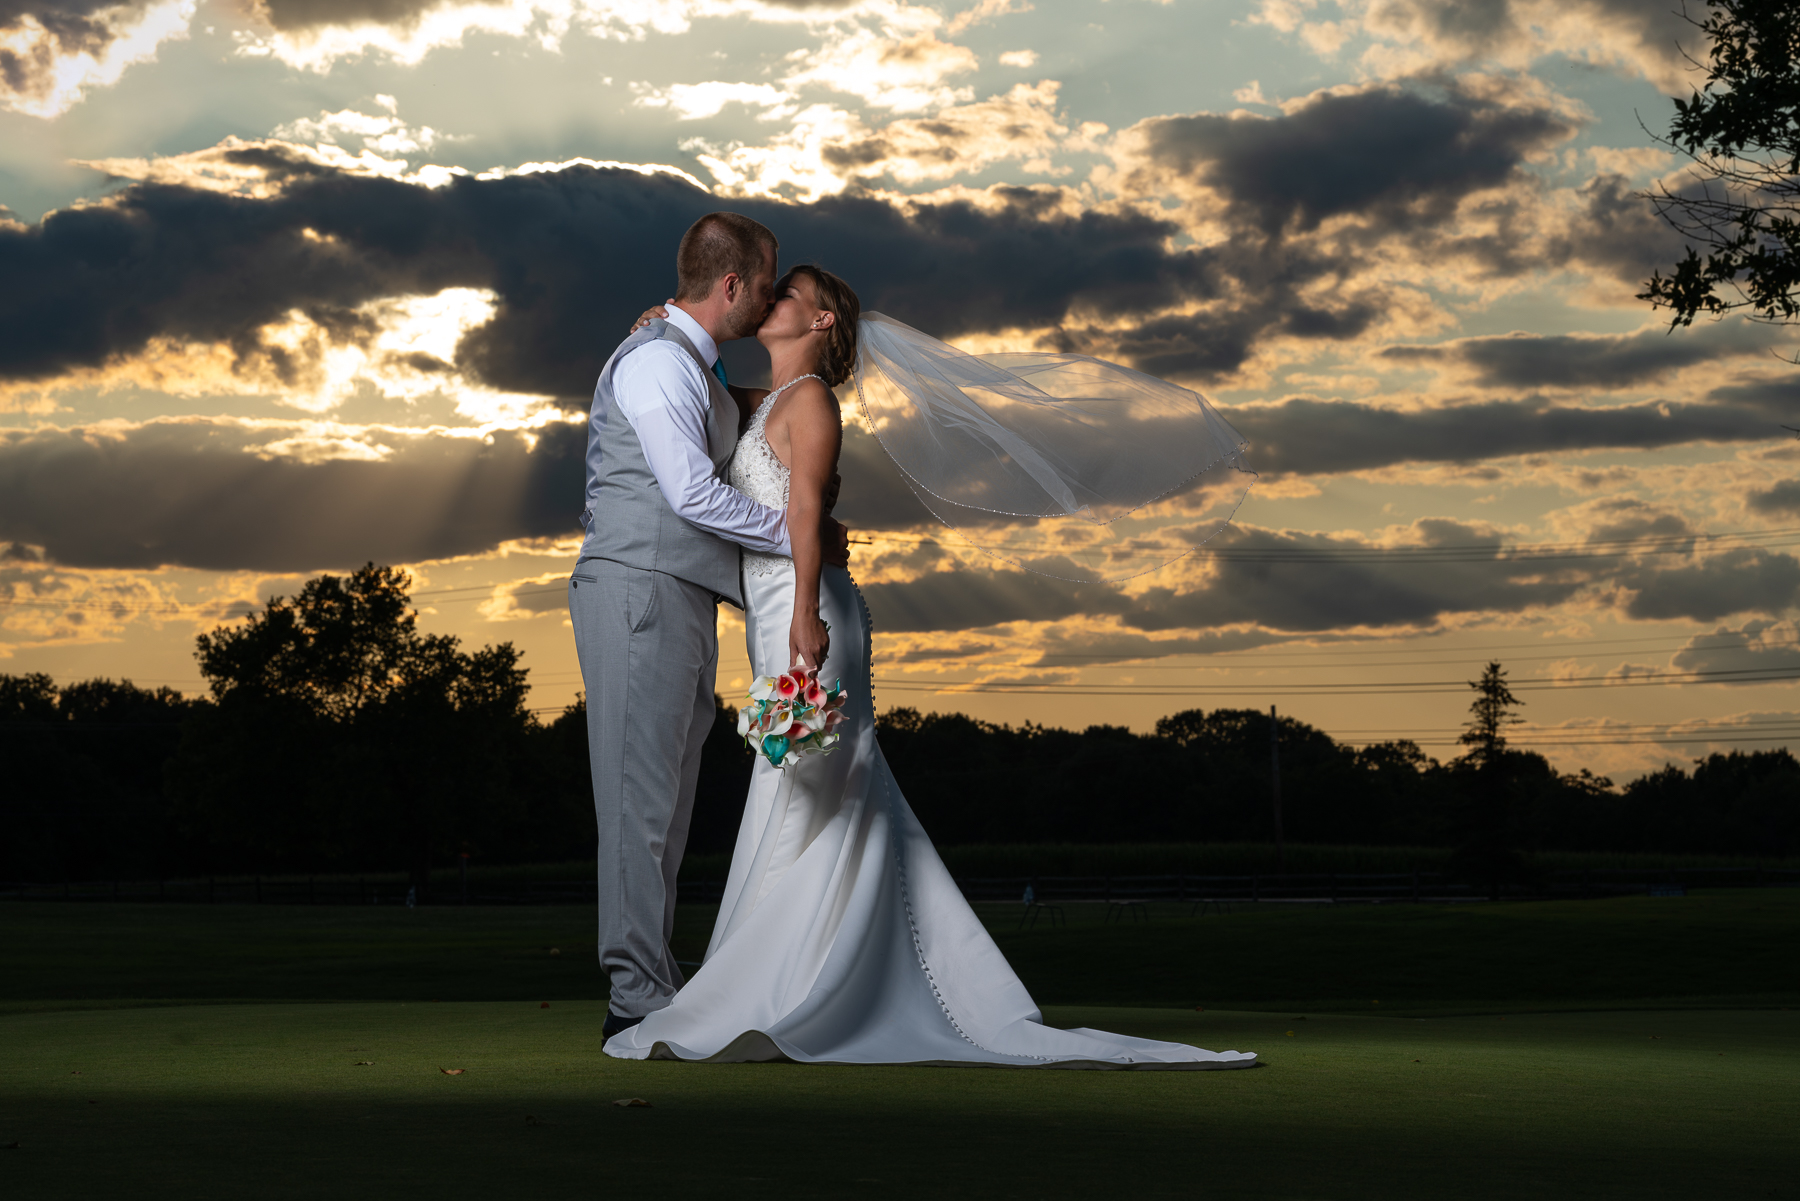 Stunning sunset for Wedding Photos at the Bridges Golf Course in Abbottstown, PA